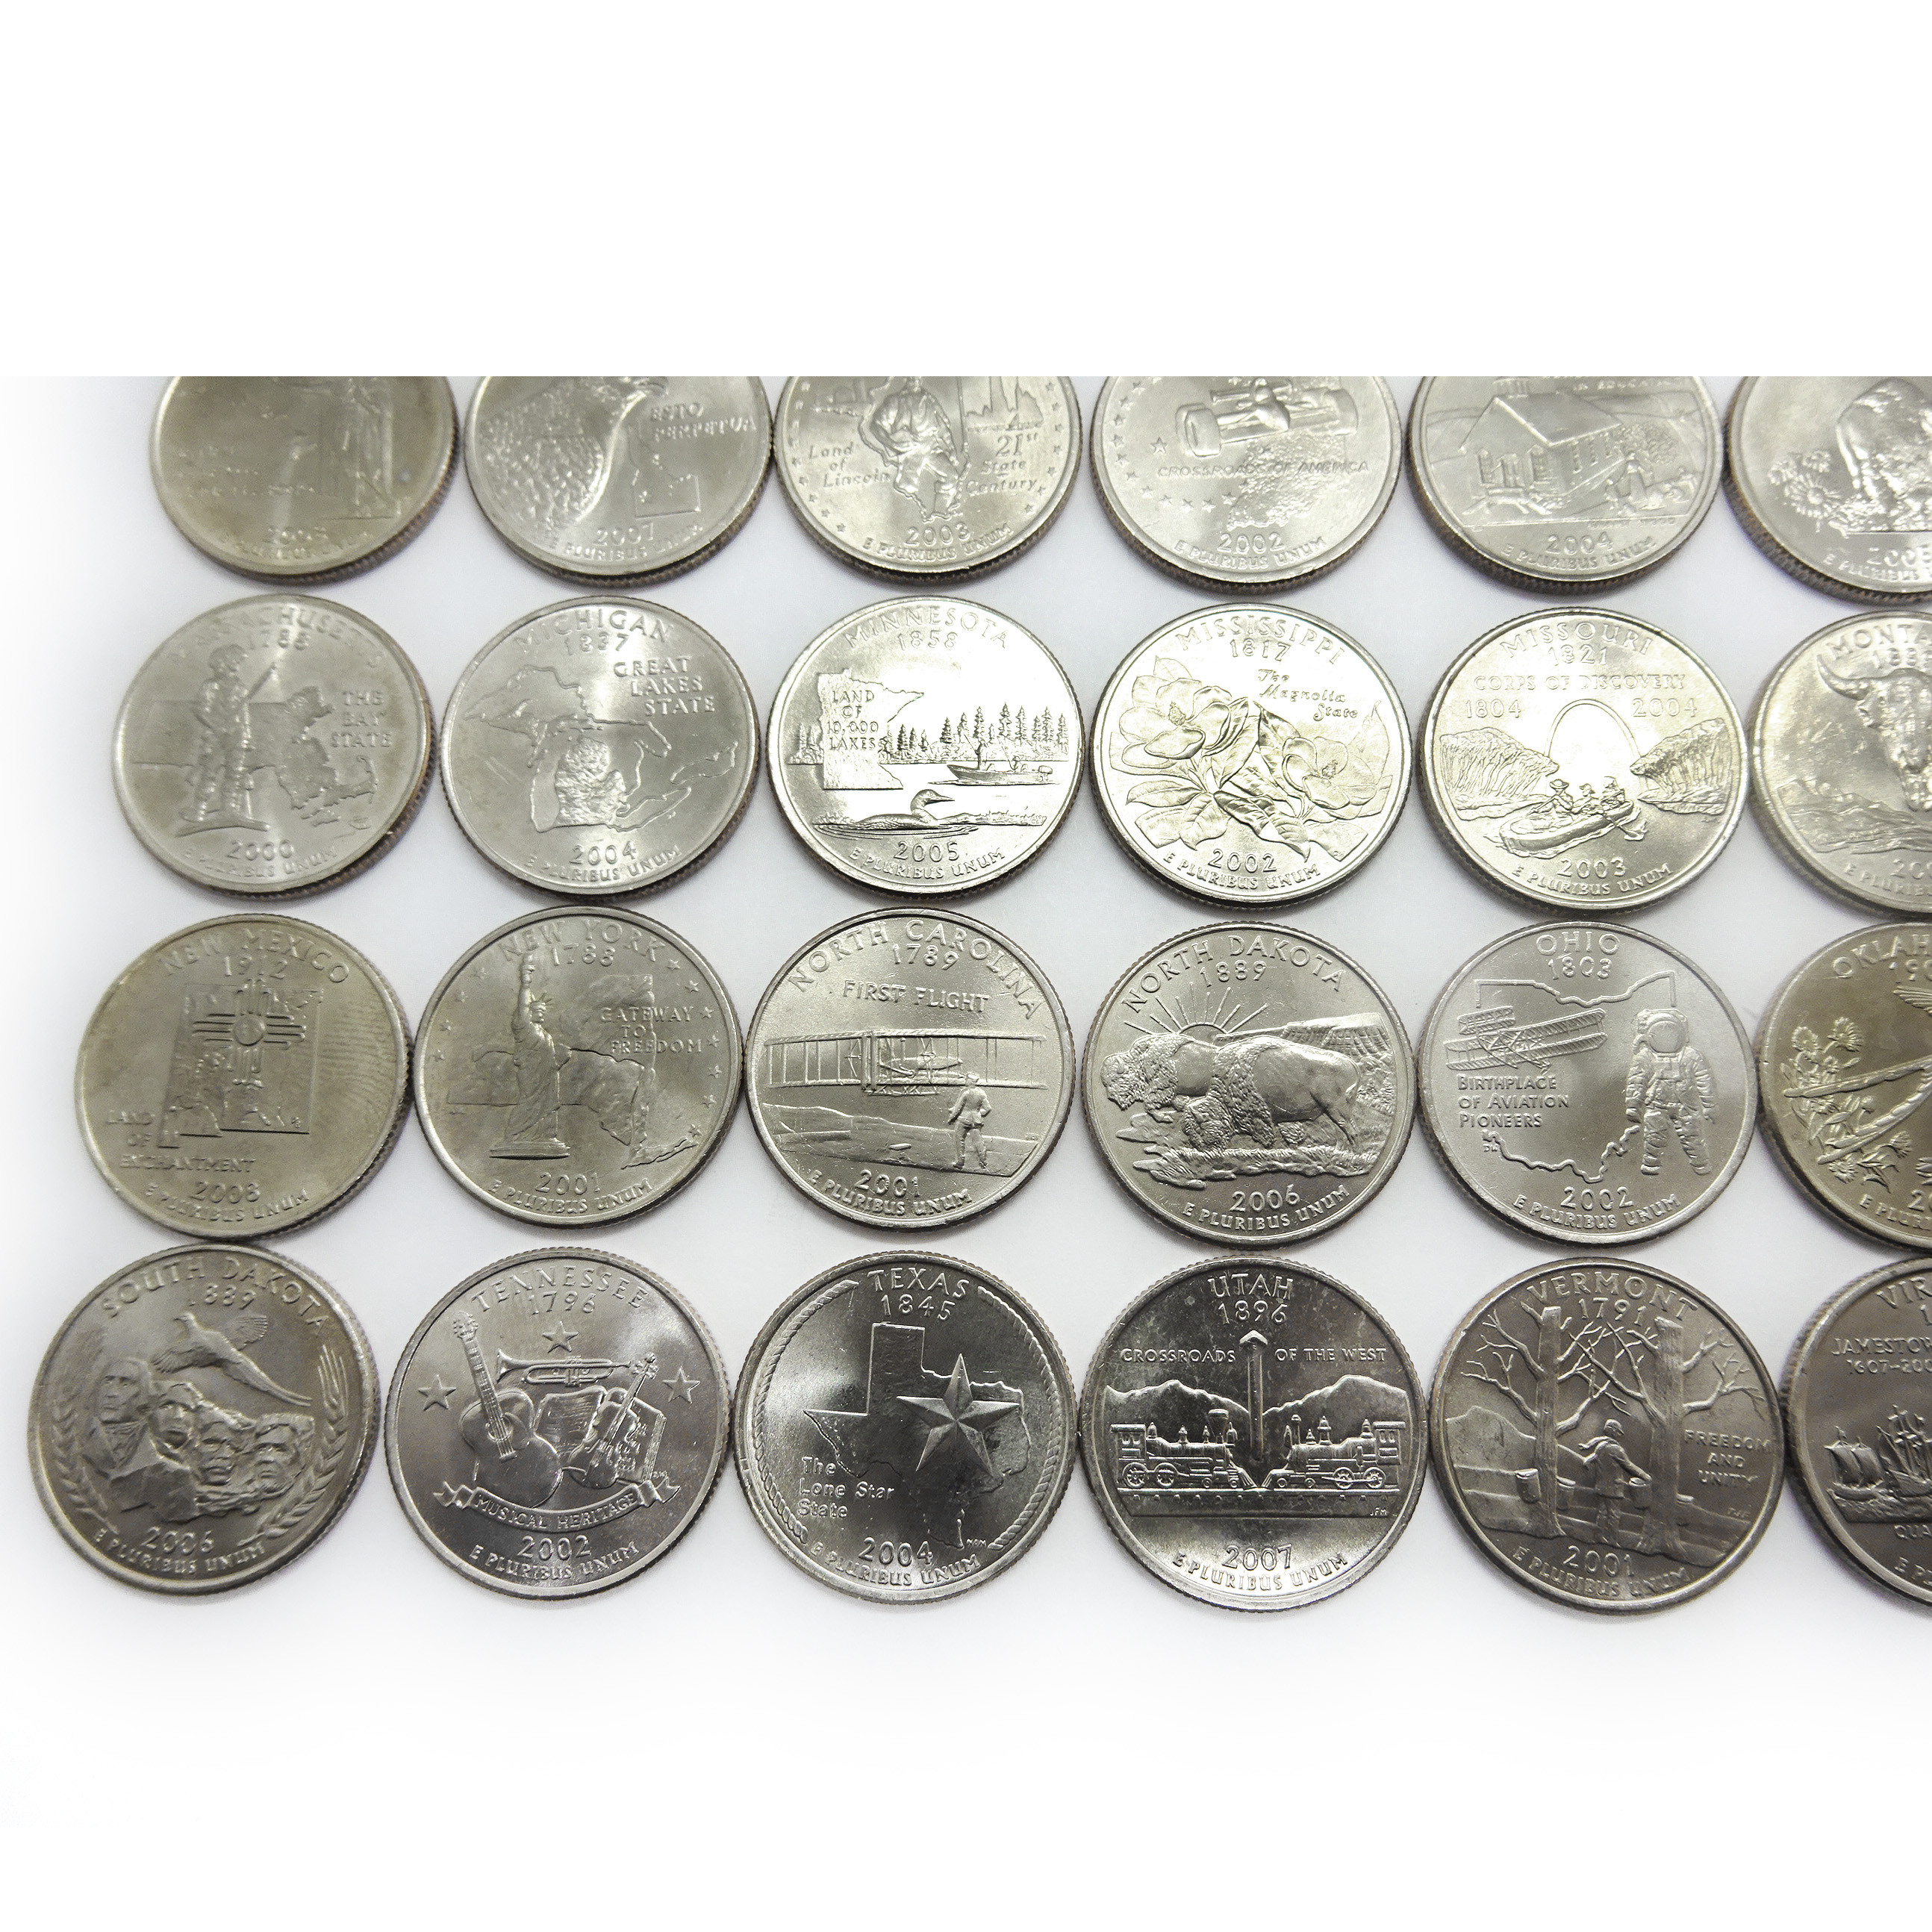 Awesome Plete Us State Quarter Set 50 Coins 1999 2008 Auctions Us State Quarter Collection Of Charming 49 Ideas Us State Quarter Collection